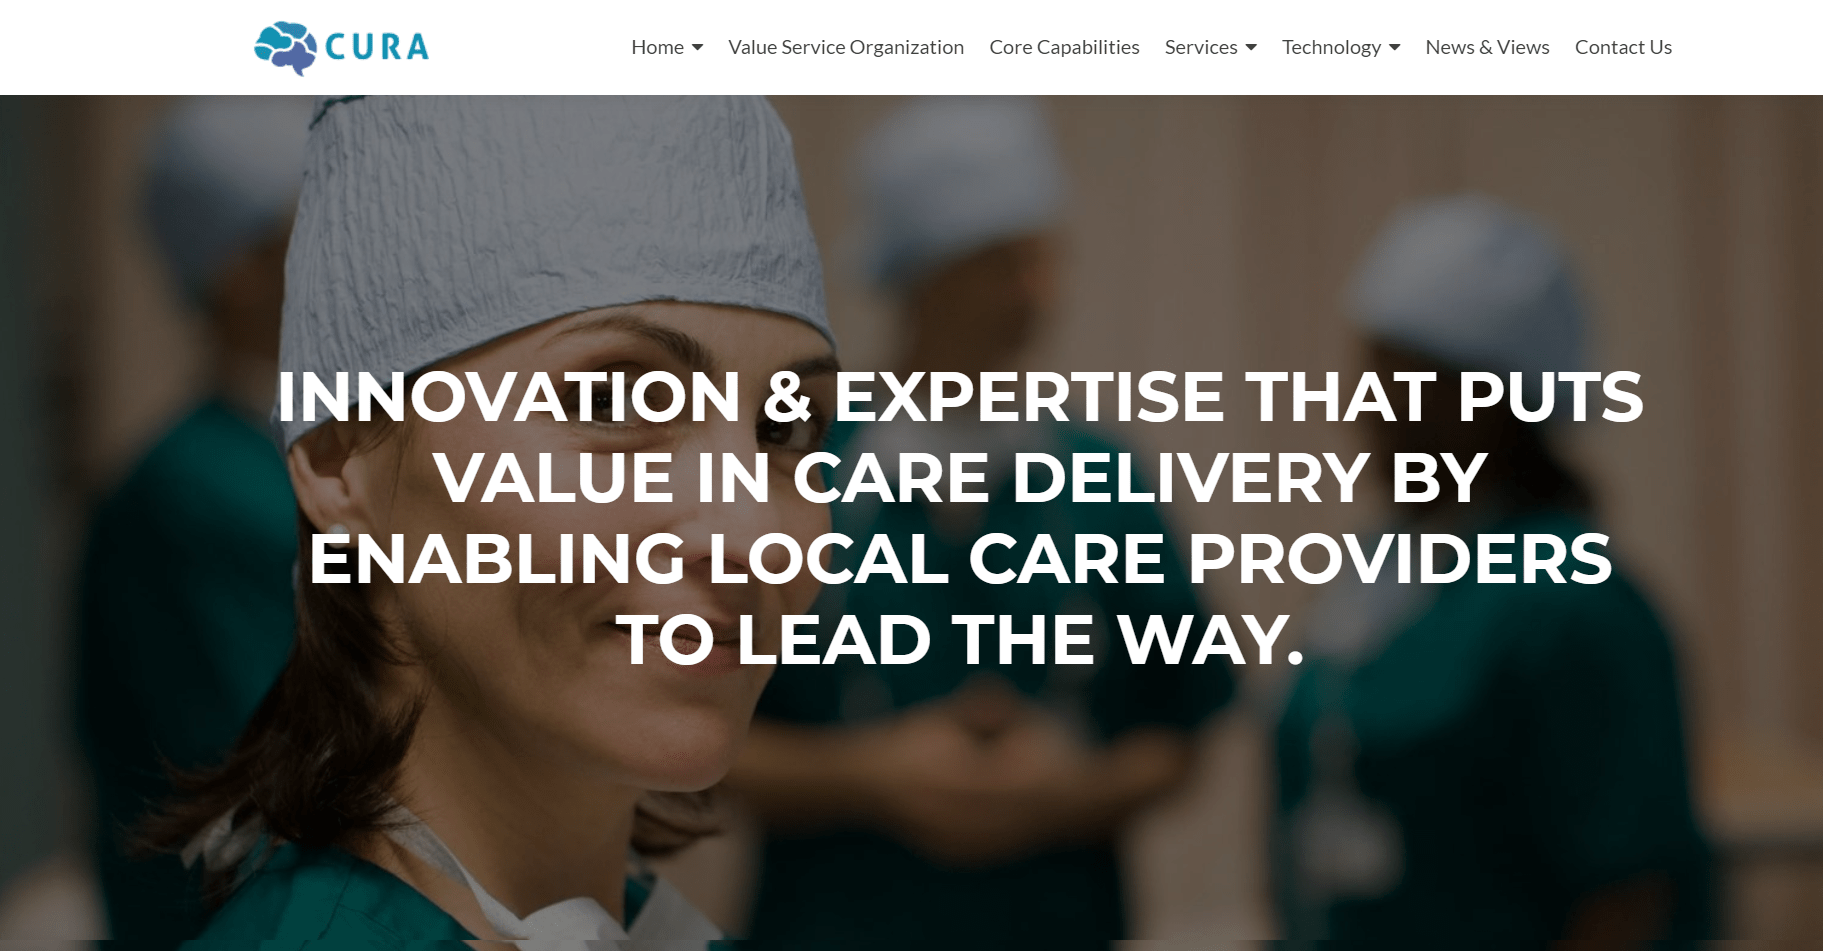 HealthLynked Signs Definitive Agreement to Acquire Cura Health Management, LLC, and ACO Health Partners, LLC Adding Significant Revenue and Profitability from Its Newly Formed Accountable Care Organization Division